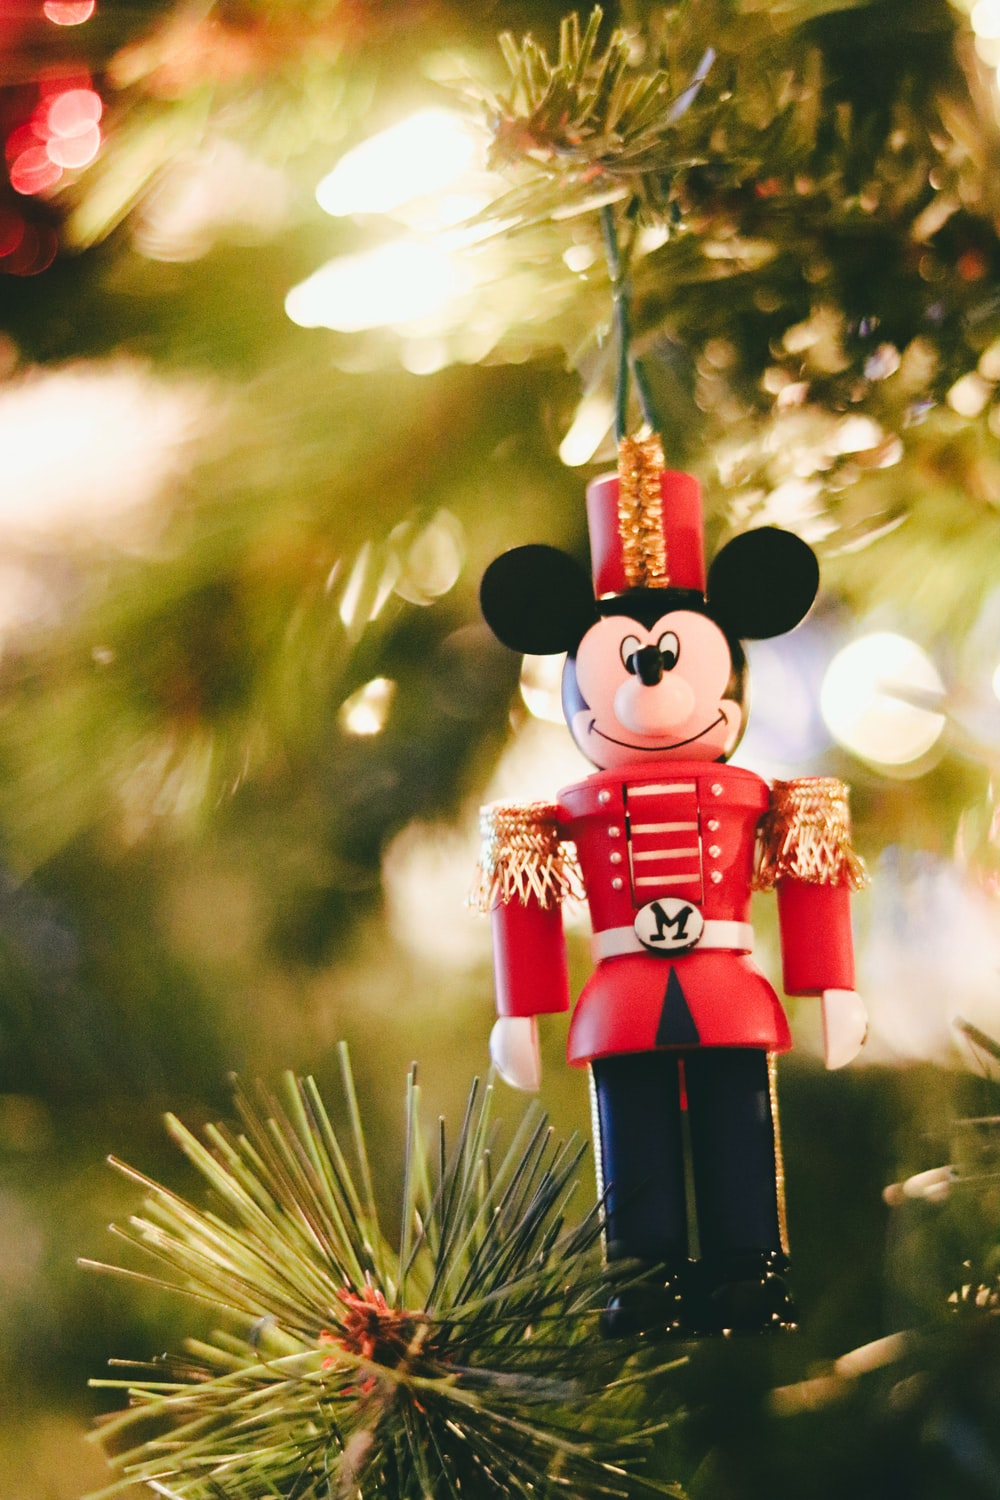 red and black mickey mouse figurine